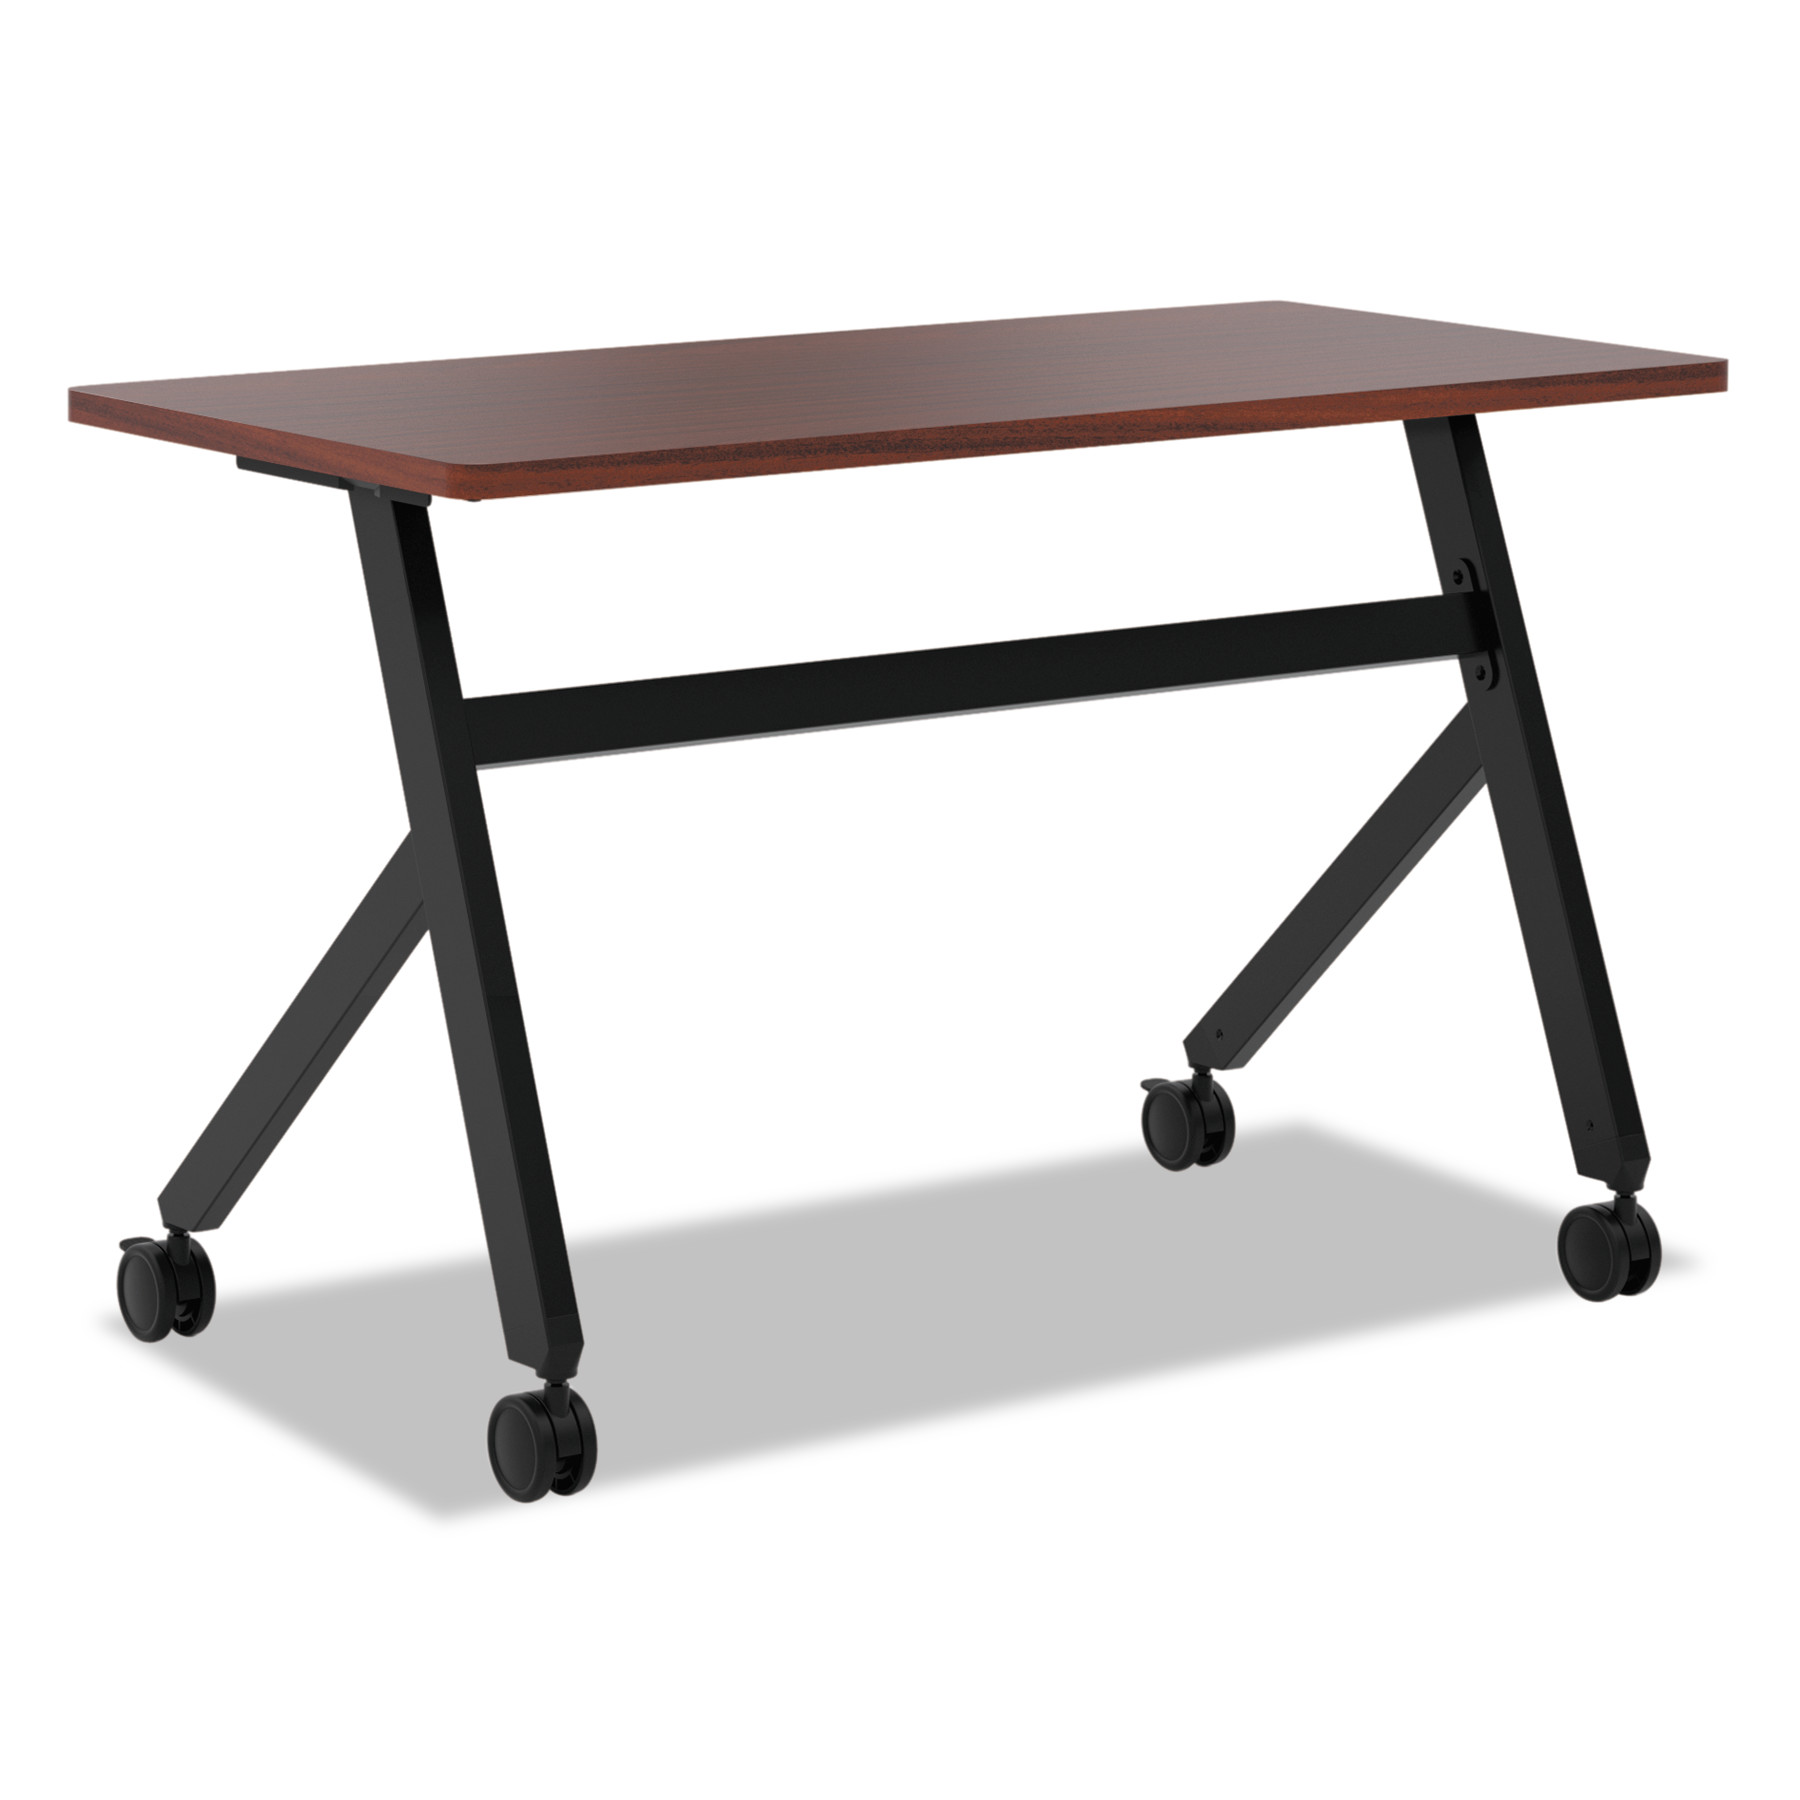 basyx Multipurpose Table Fixed Base Table, 48w x 24d x 29 3/8h, Chestnut